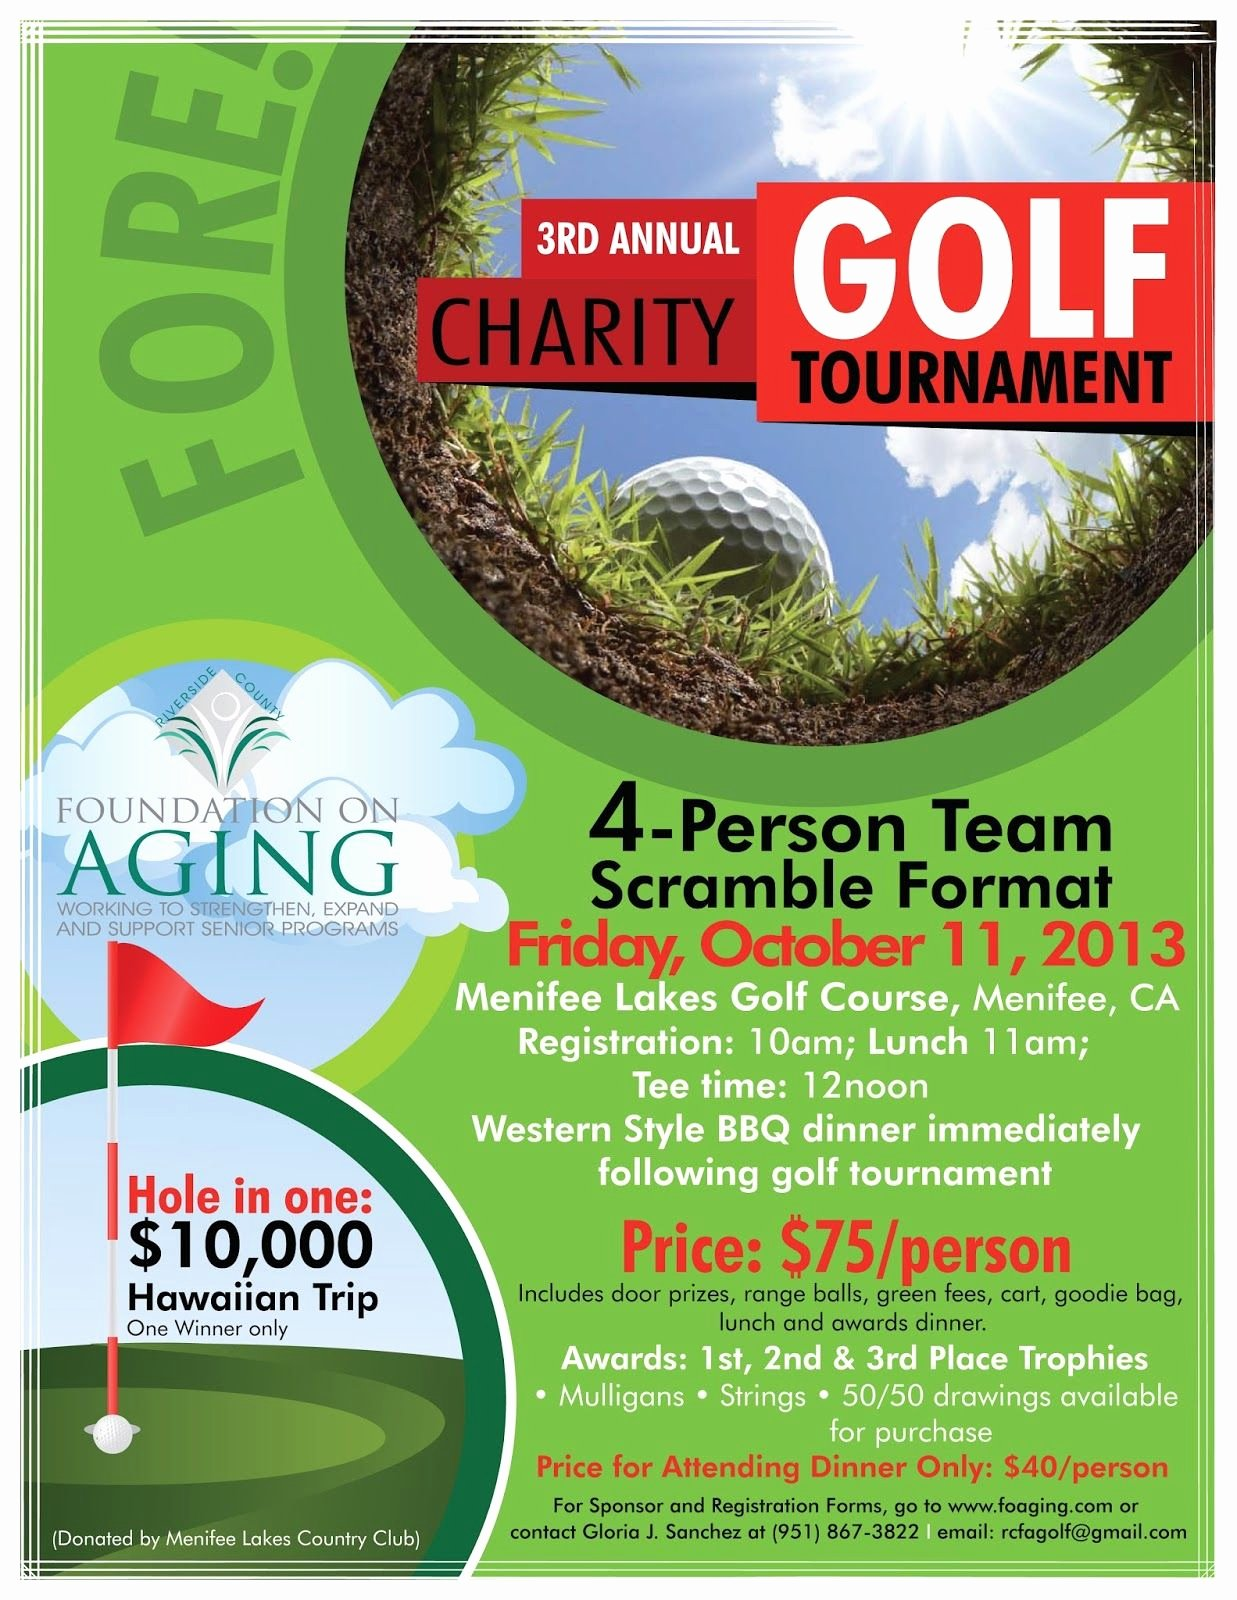 Charity Golf tournament Flyer Beautiful Charity Golf tournament Golf tournament Poster Ideas